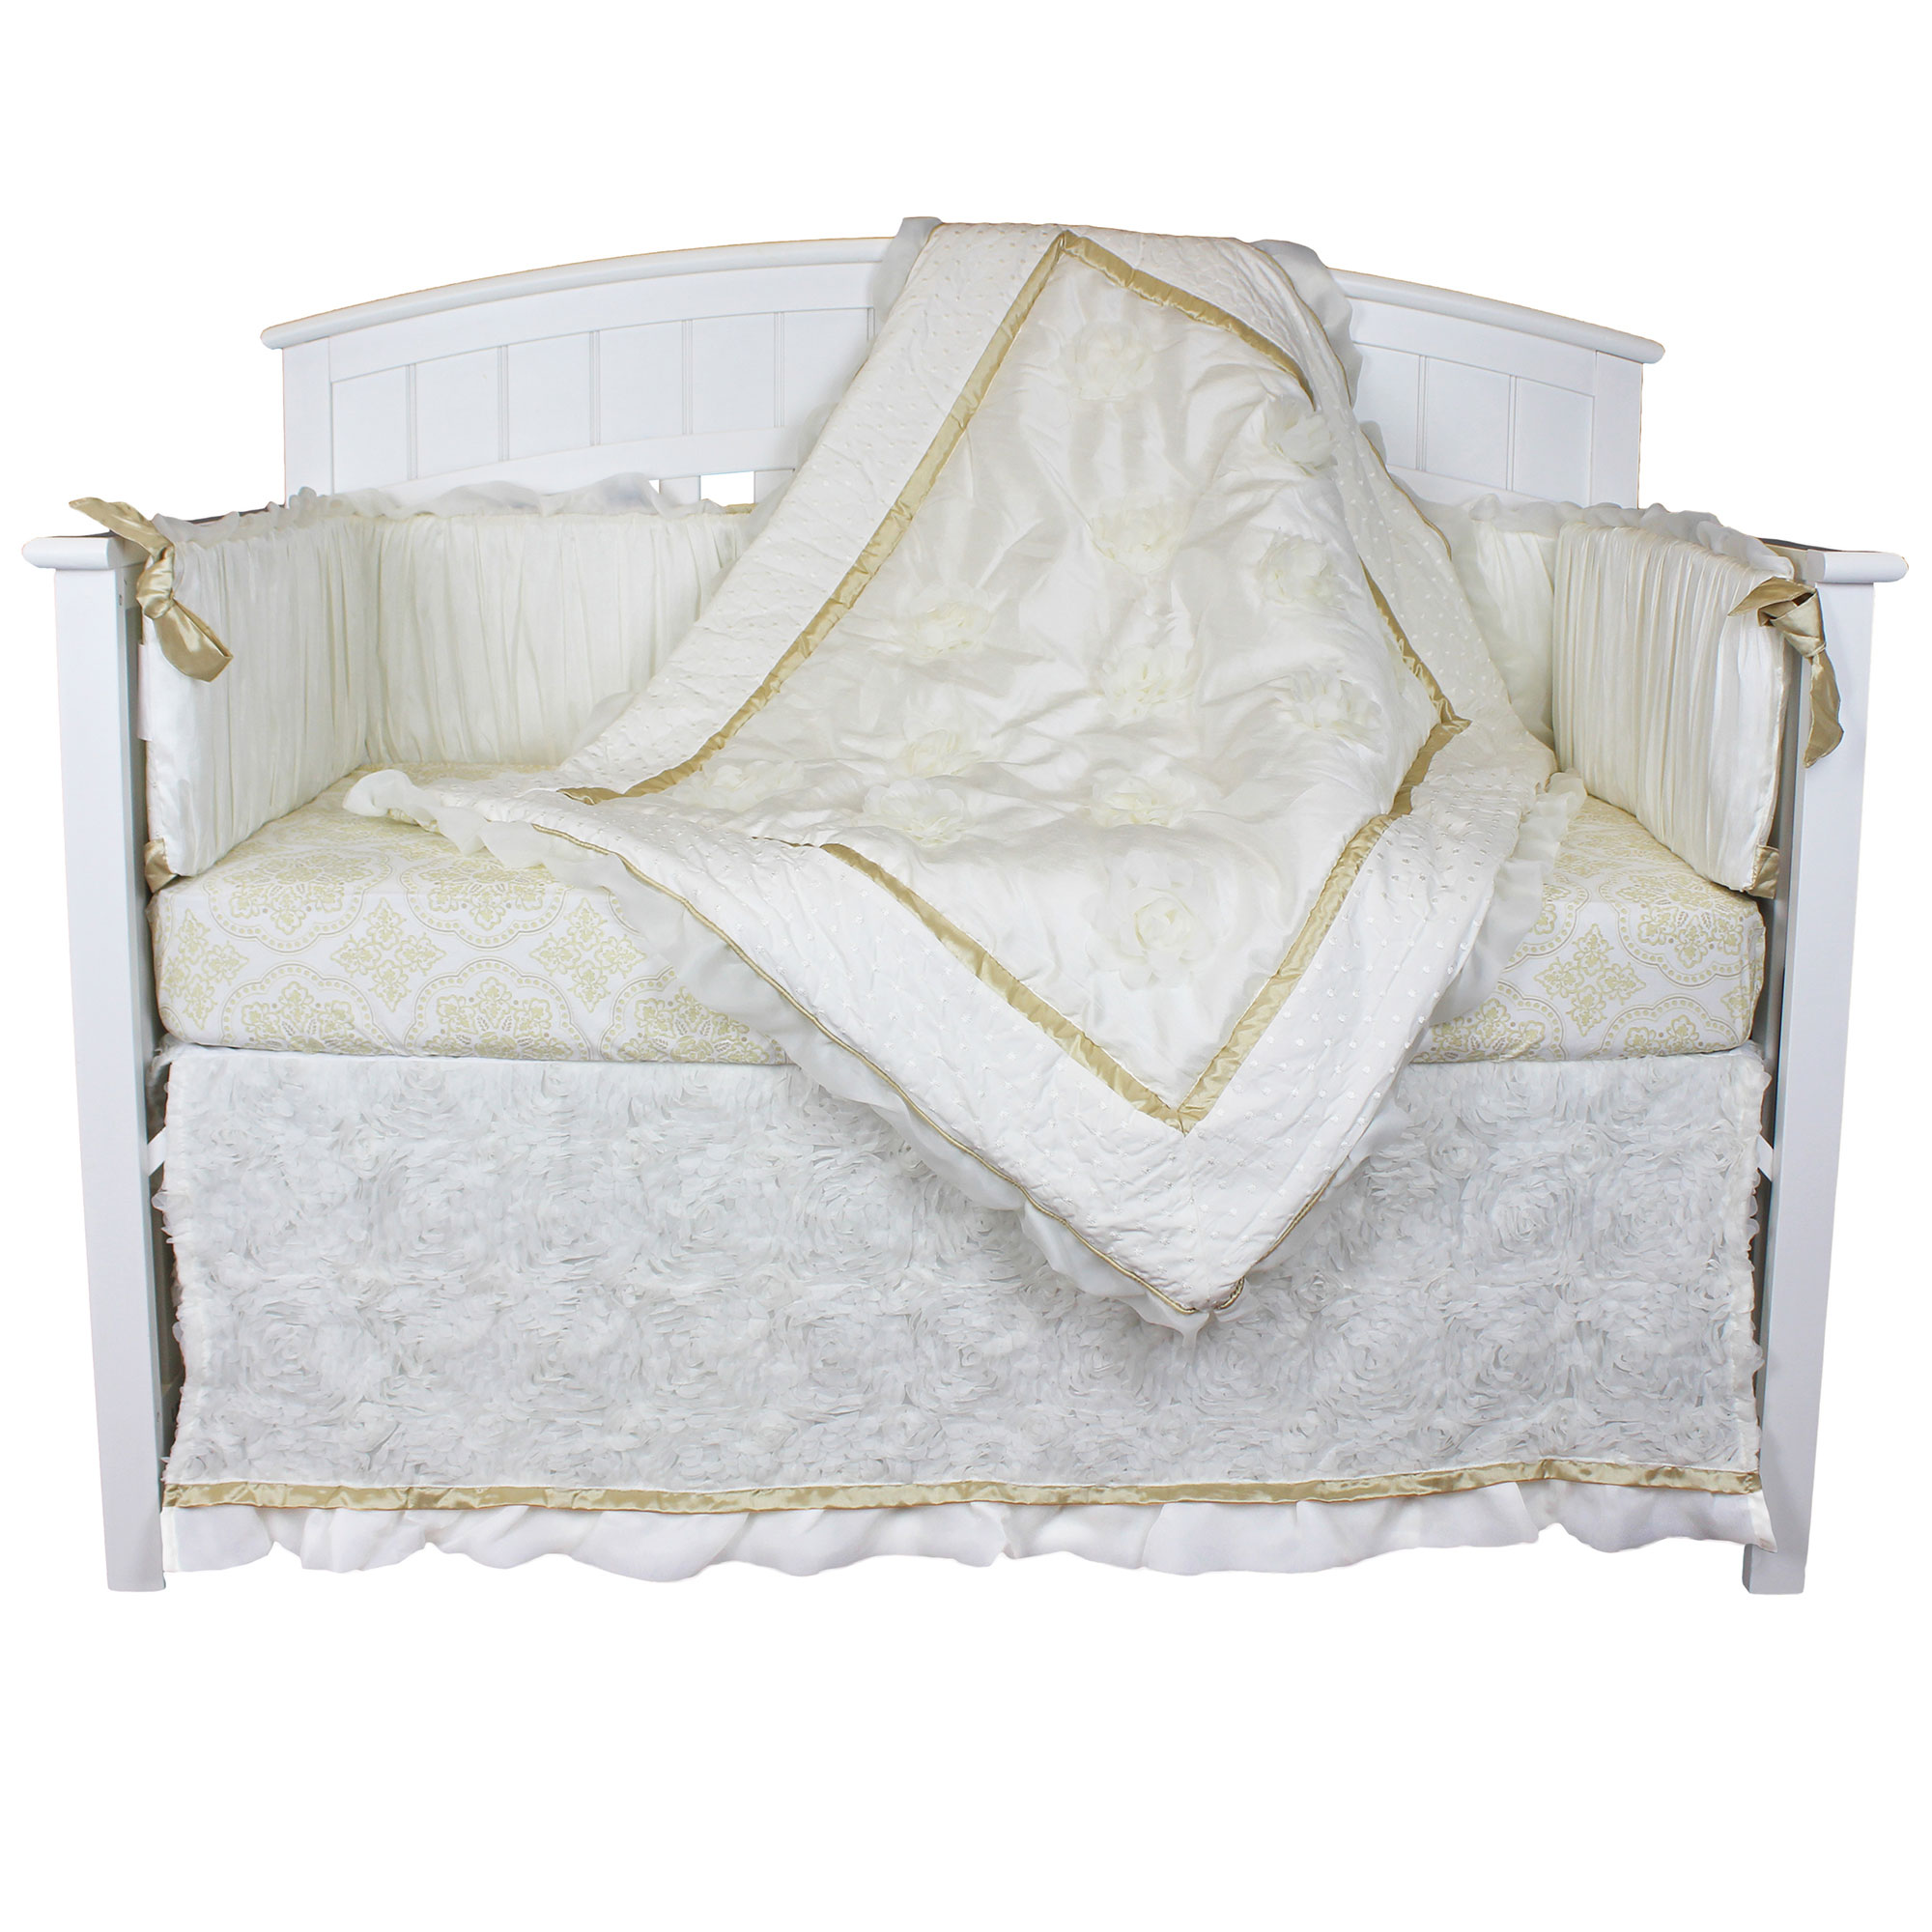 The Peanut Shell Crib Bedding Set - White, Ivory and Gold - Juliet Baby Girl Crib Bedding 5 Piece Collection with Bumper